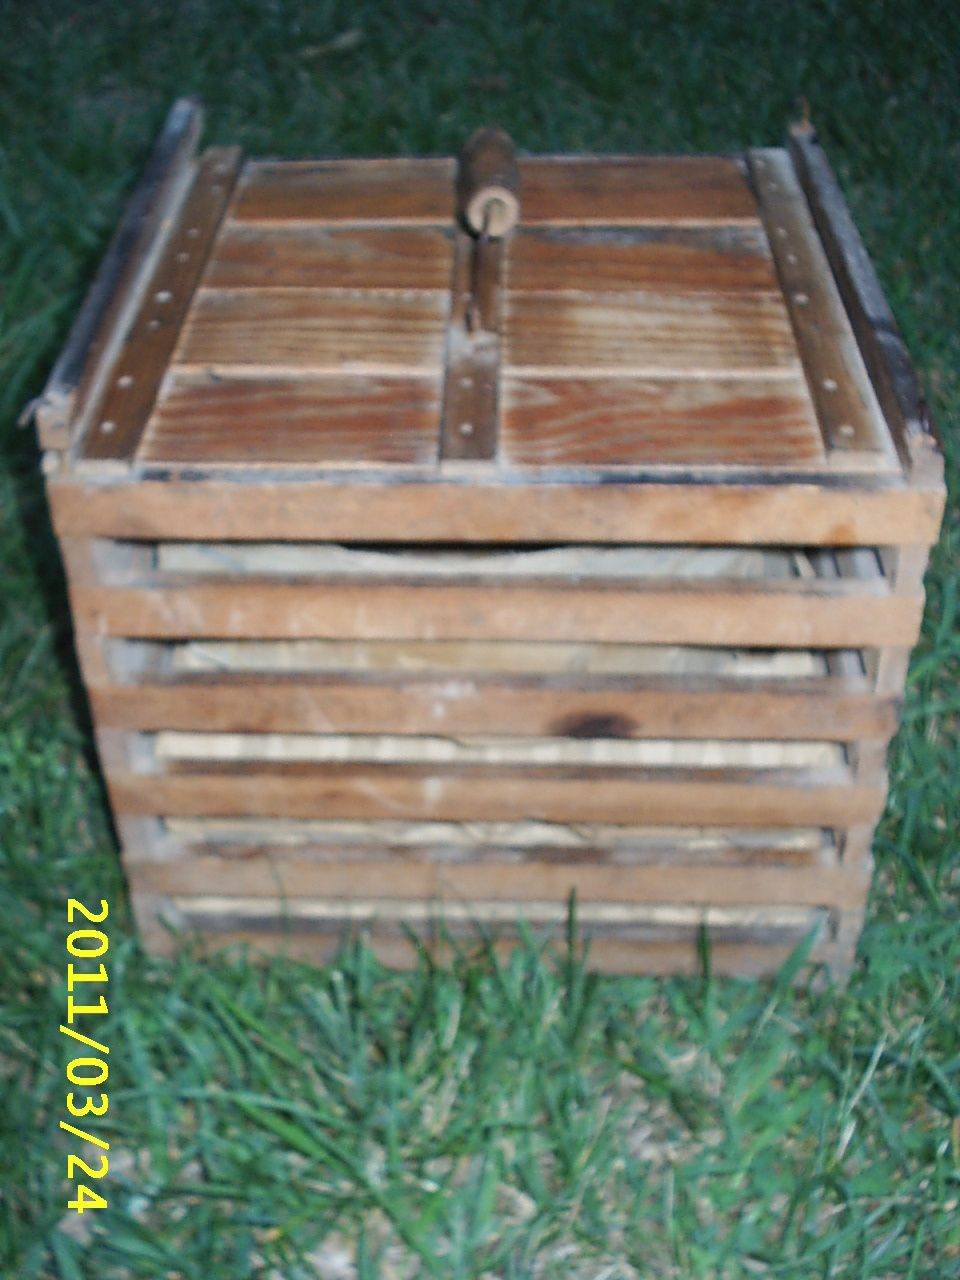 Vintage Wooden Egg Carrier/Crate Humpty Dumpty Cardboard Inserts Owosso, Mich          $47.99